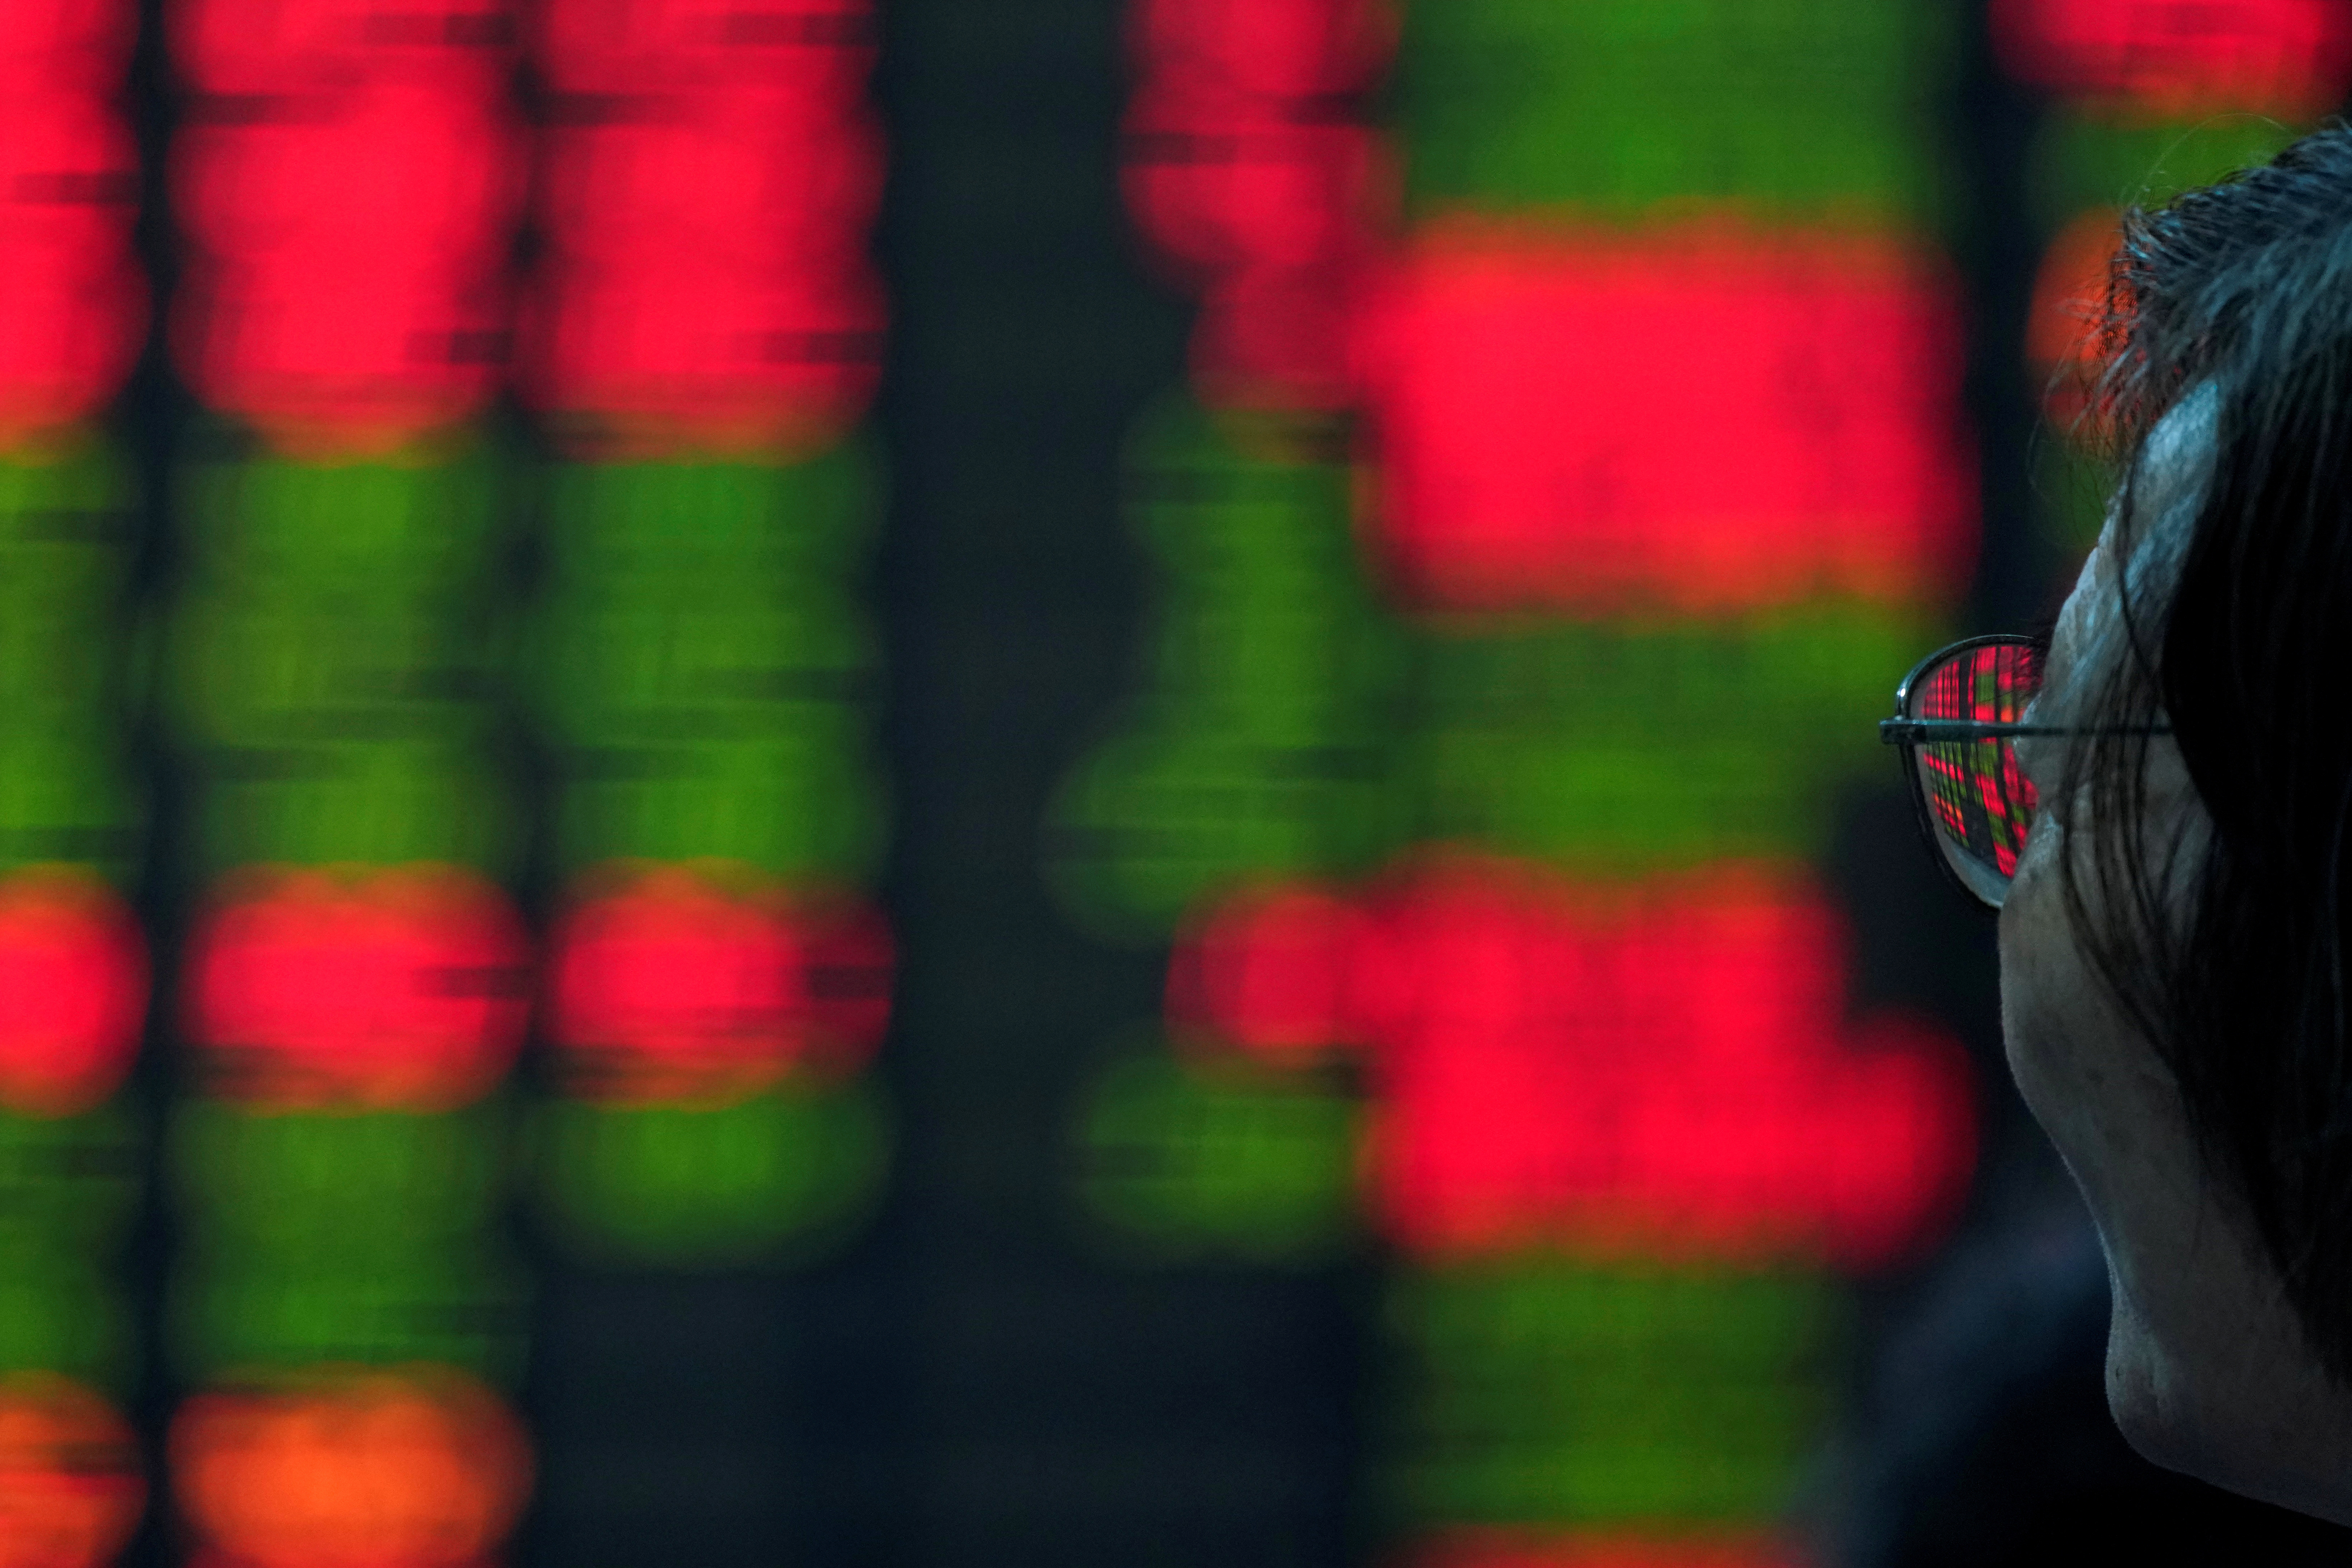 An investor looks at an electronic board showing stock information at a brokerage house in Shanghai, China July 6, 2018. REUTERS/Aly Song - RC1CDAB1A6B0